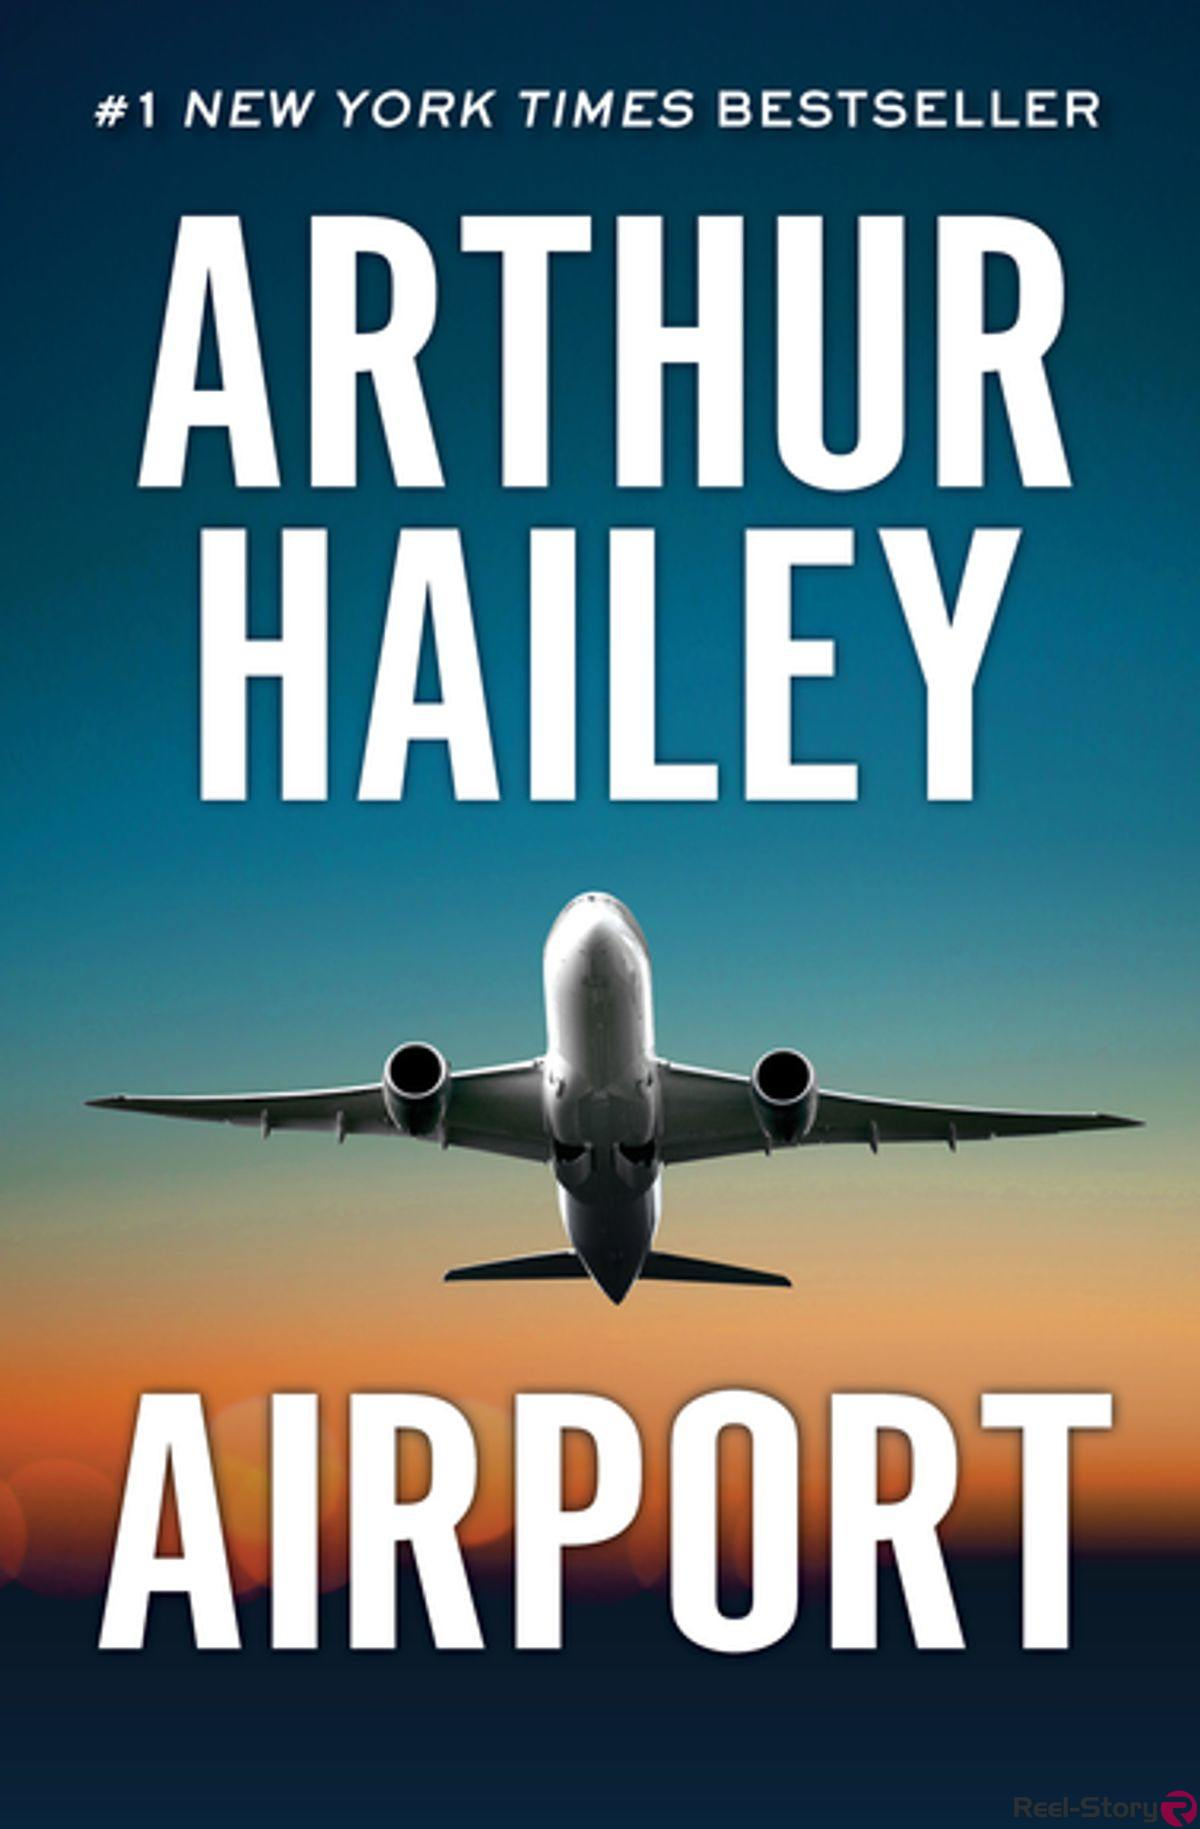 Airport – Arthur Hailey